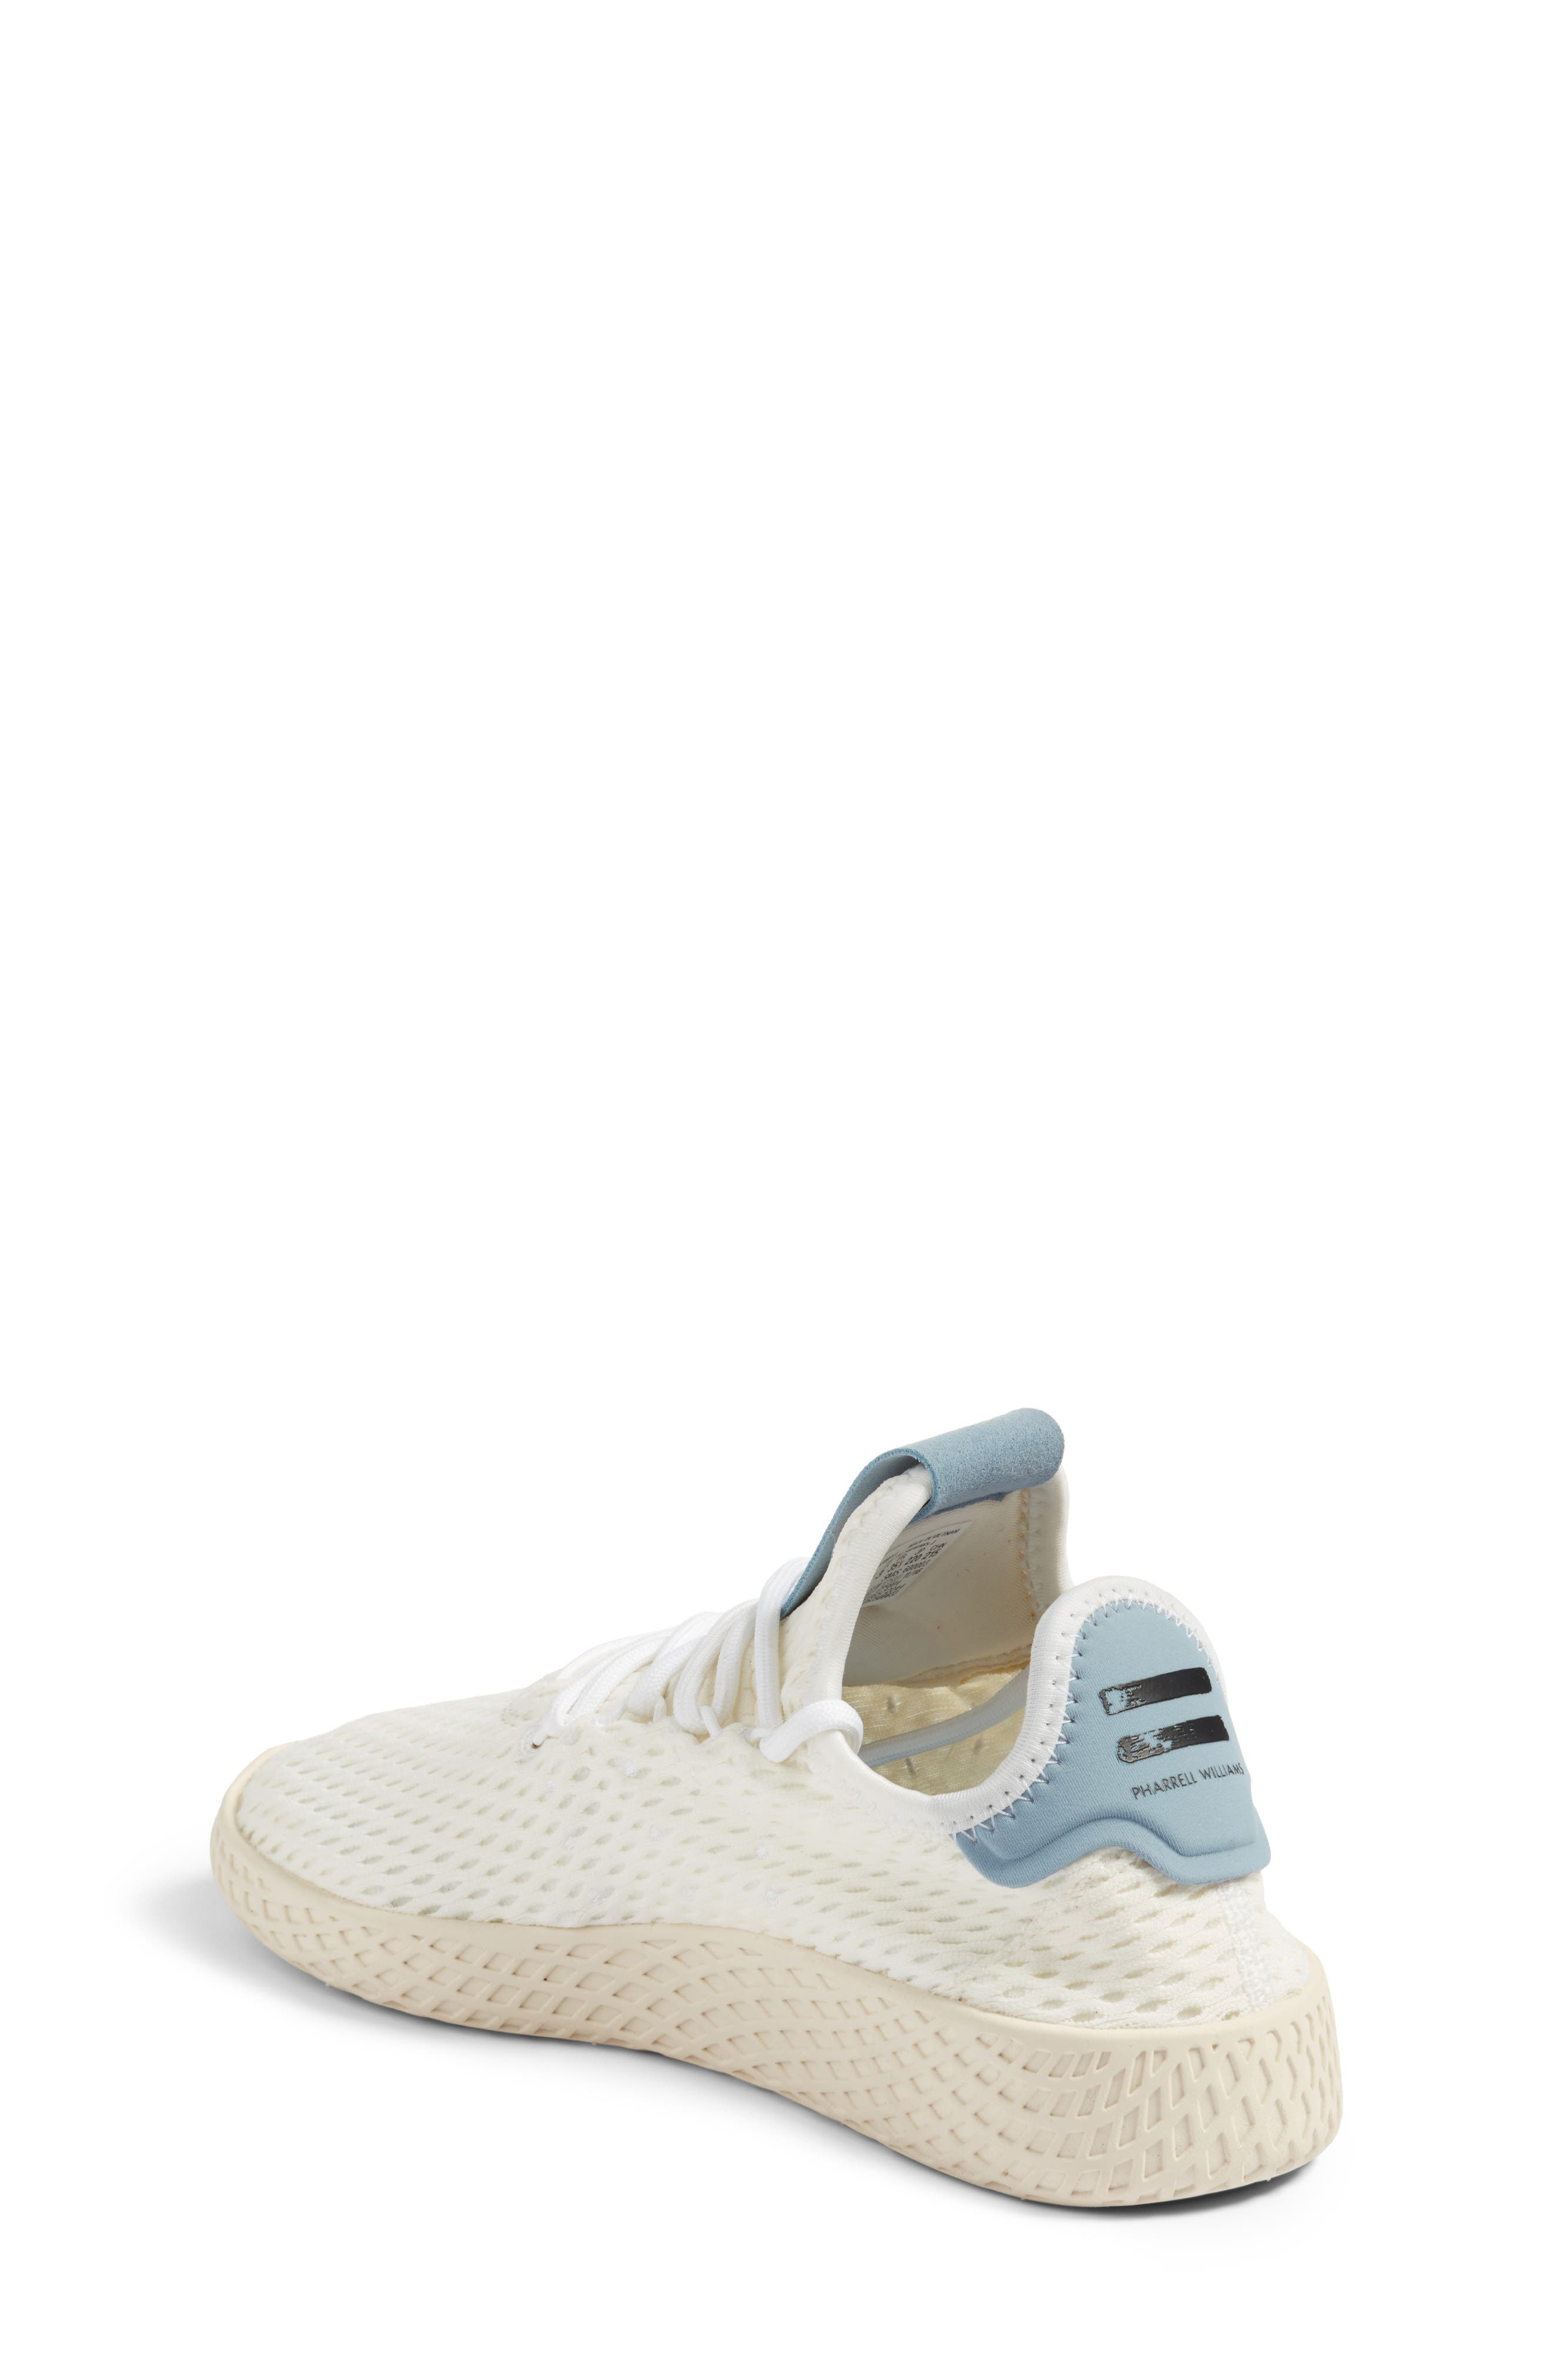 Originals x Pharrell Williams The Summers Mesh Sneaker,                             Alternate thumbnail 2, color,                             Footwear White/ Tactile Blue